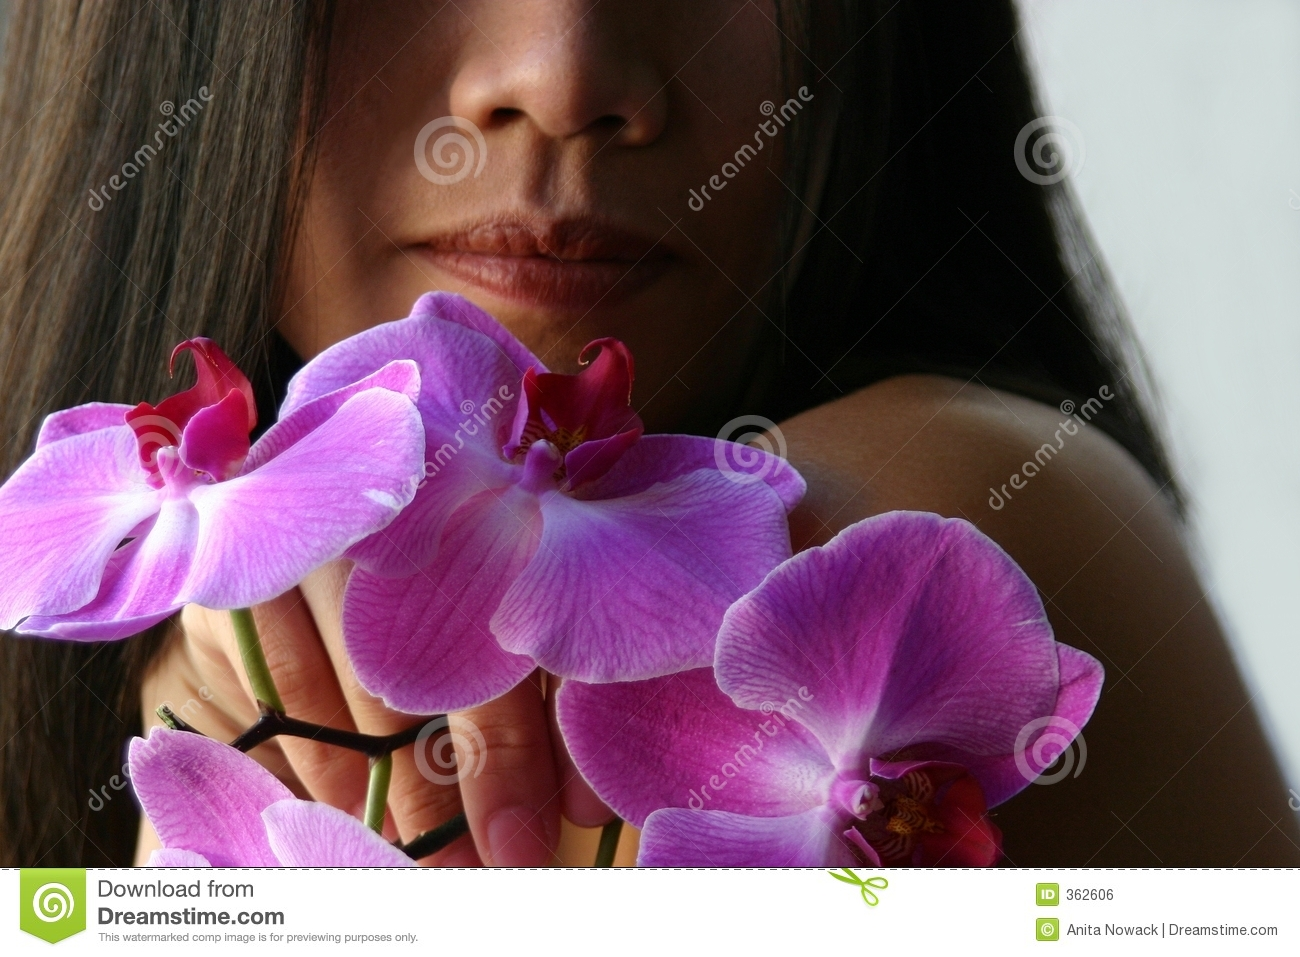 Holding orchids